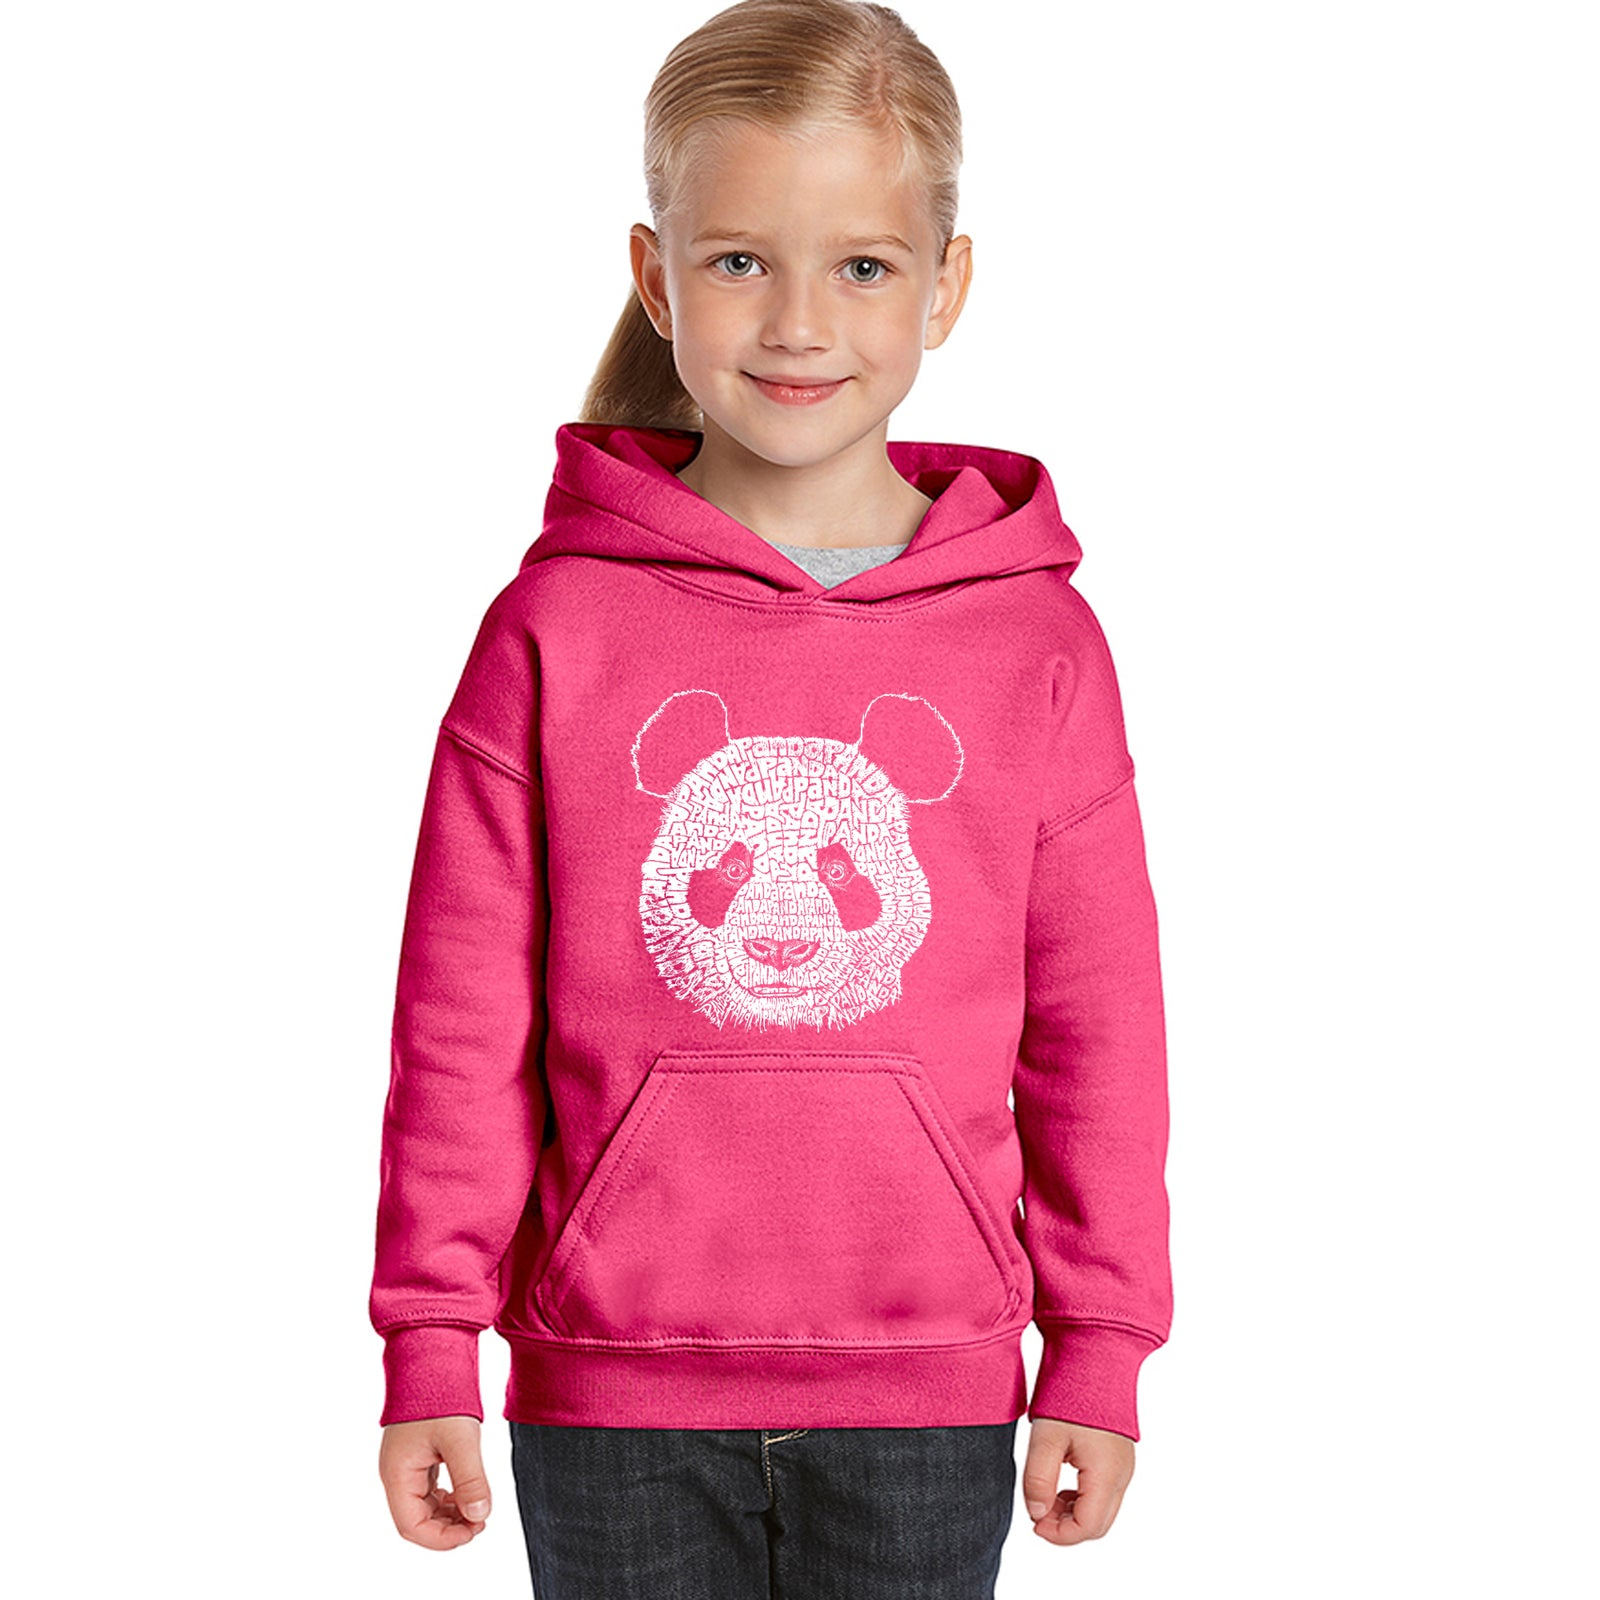 Girl's Word Art Hooded Sweatshirt - Panda